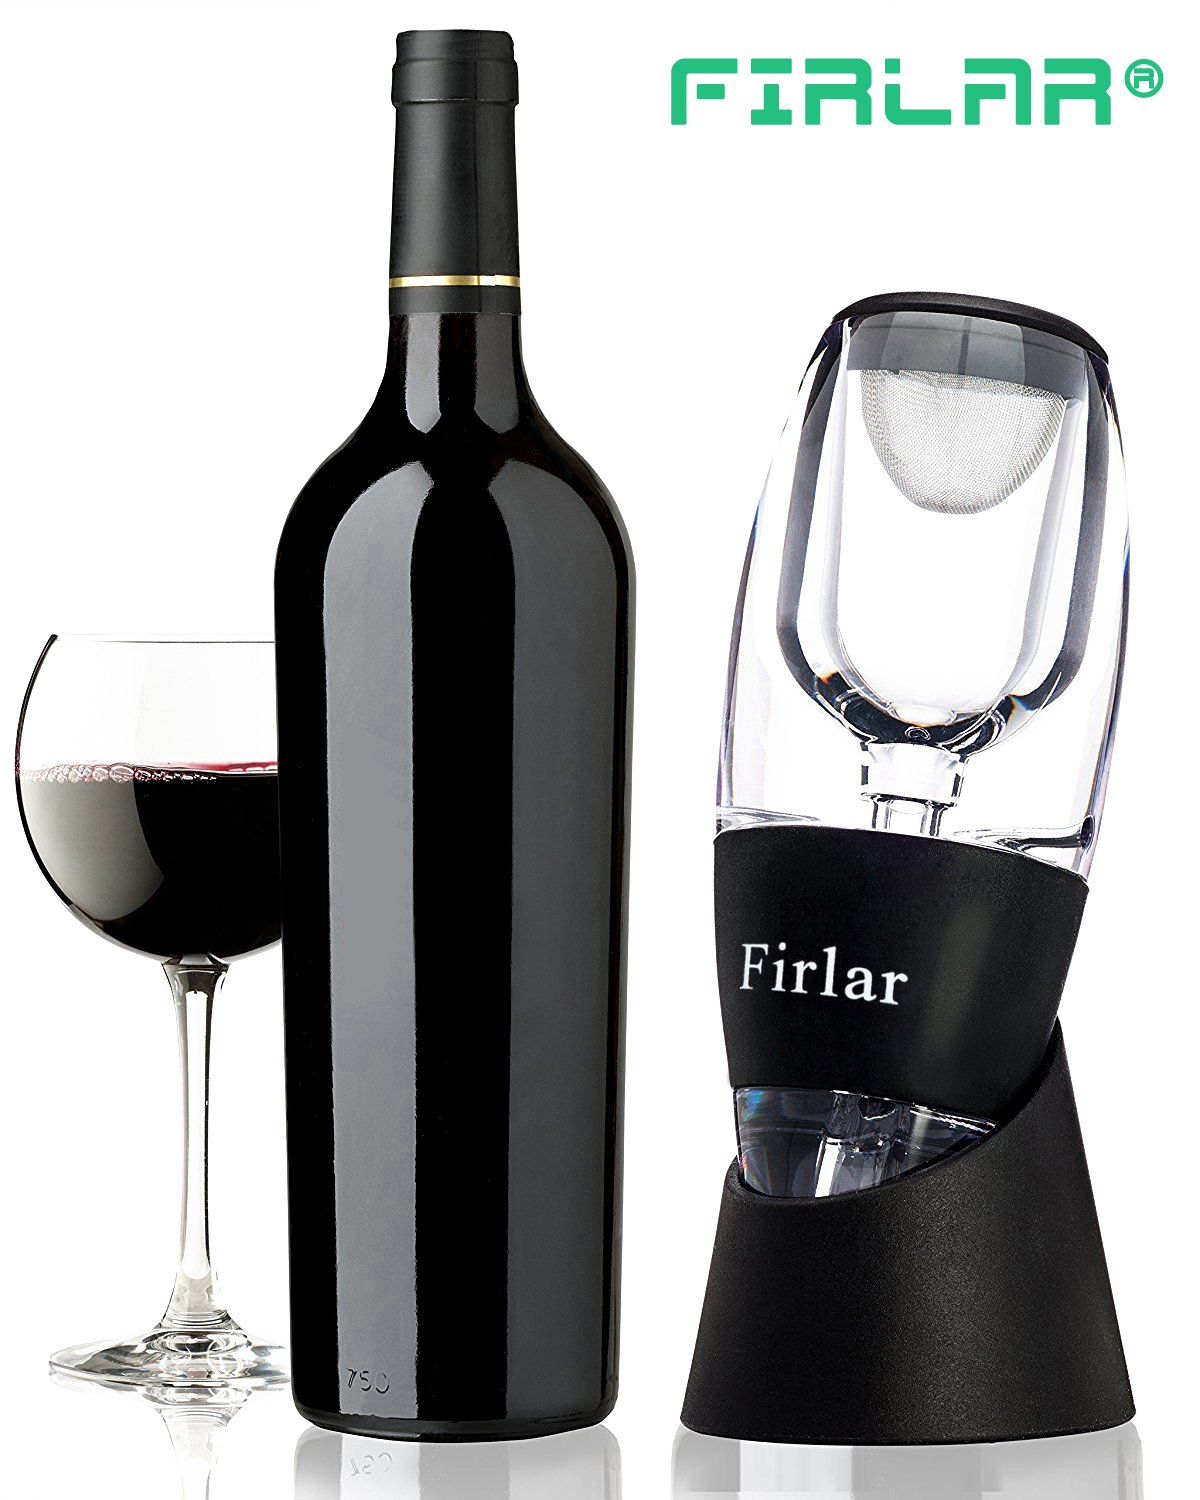 Firlar Essential Wine Aerator Decanter Set with Gift Box Magic Decanter Pourer Gift Ideal for Valentine\'s Day Anniversary Birthday for Couples Friends Home Use(Wine Aerator)